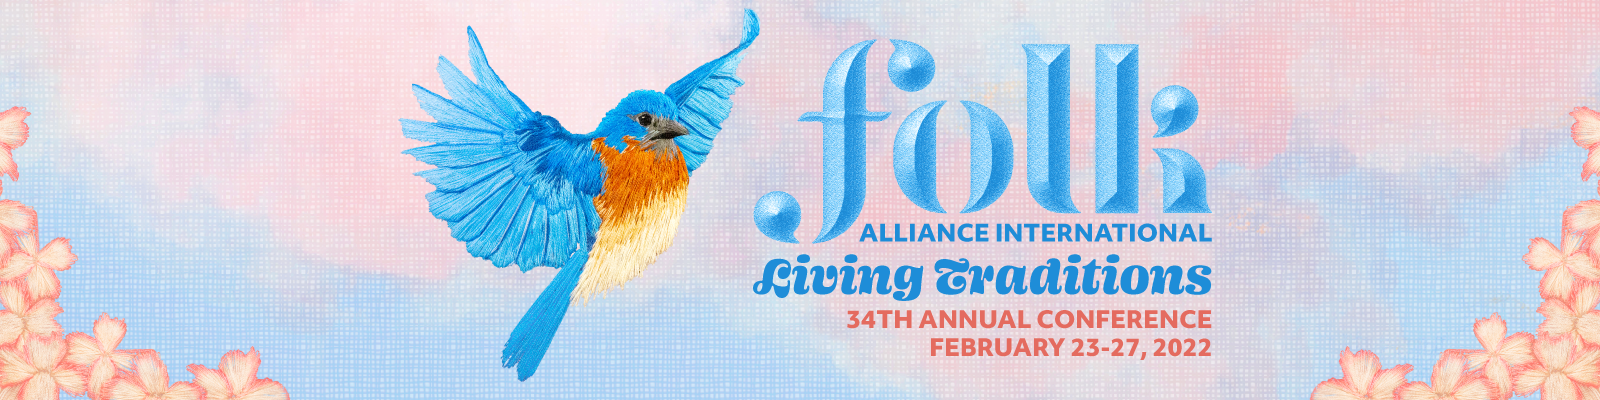 Folk Alliance International 34th Annual Conference February 23-27, Theme: Living Traditions